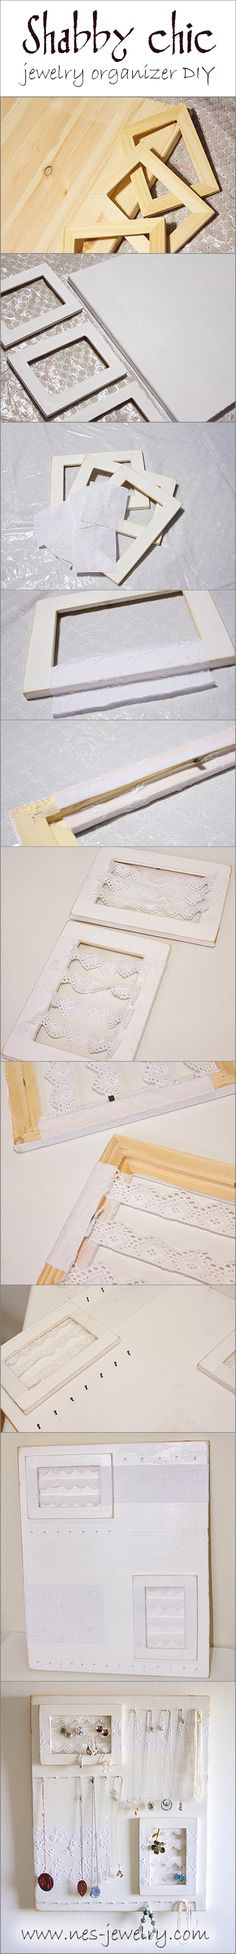 Shabby chic jewelry organizer DIY  Click for step by step instructions  http://nes-jewelry.com/shabby-chic-jewelry-organizer-diy/